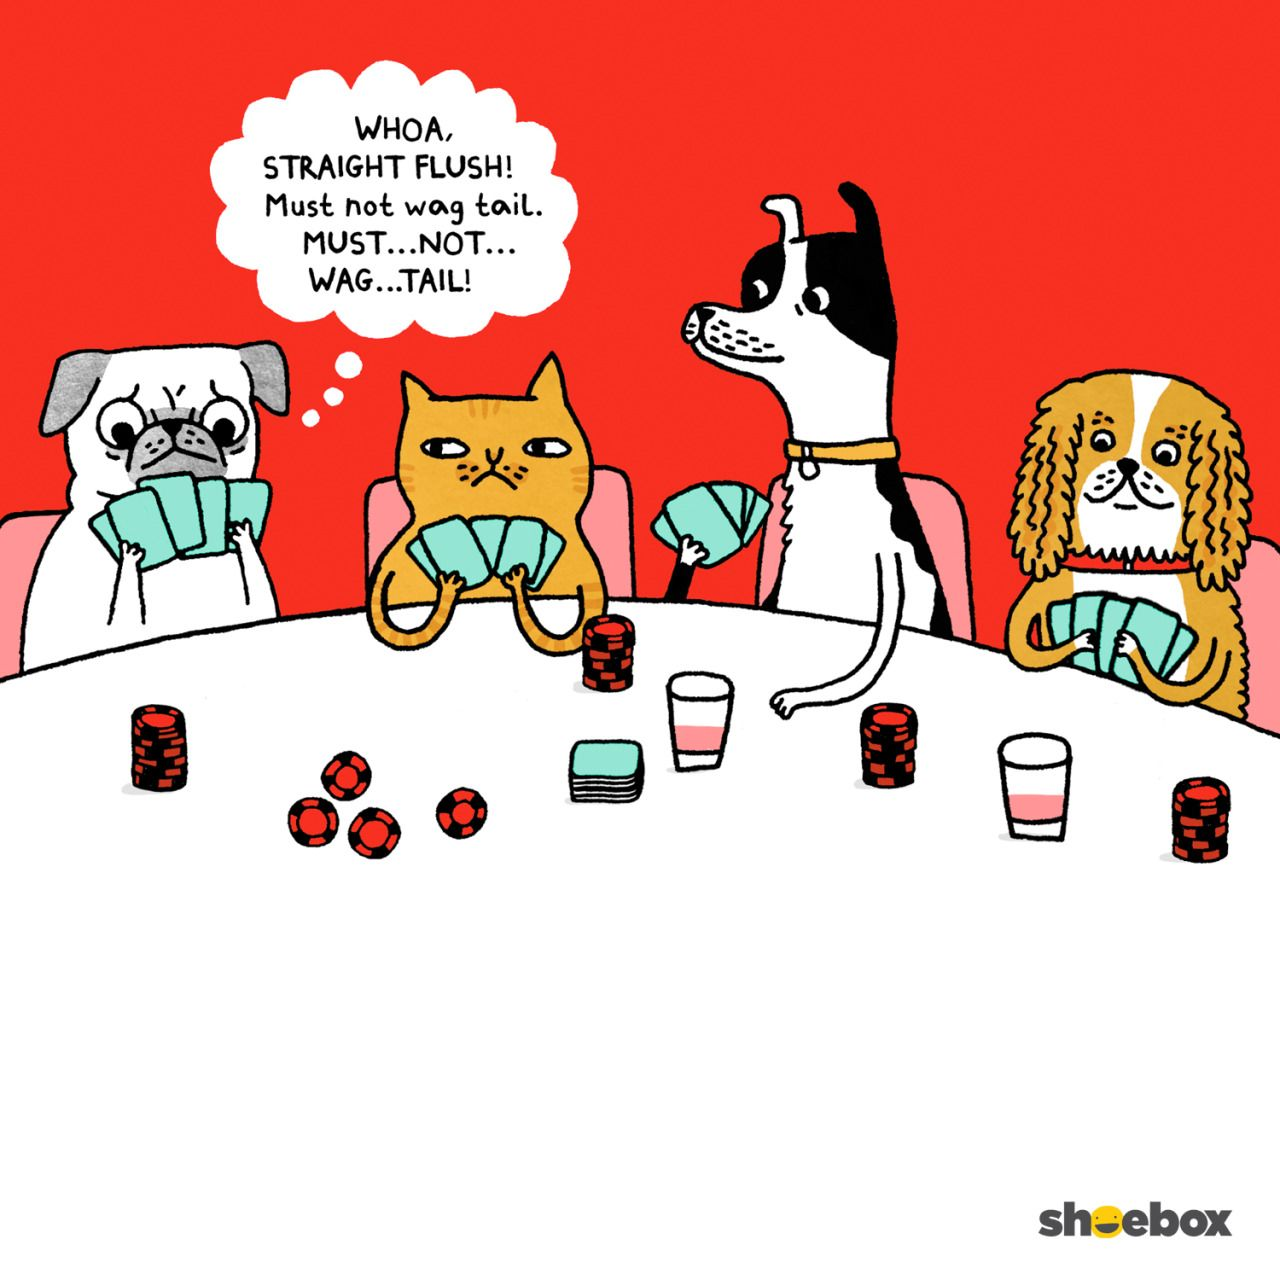 Dogs are the worst at httpsteveslearntoplaypokersitedogs dogs are the worst at httpsteveslearntoplaypokersitedogs are the worst at to read more visit httpsteveslearntoplaypokersite m4hsunfo